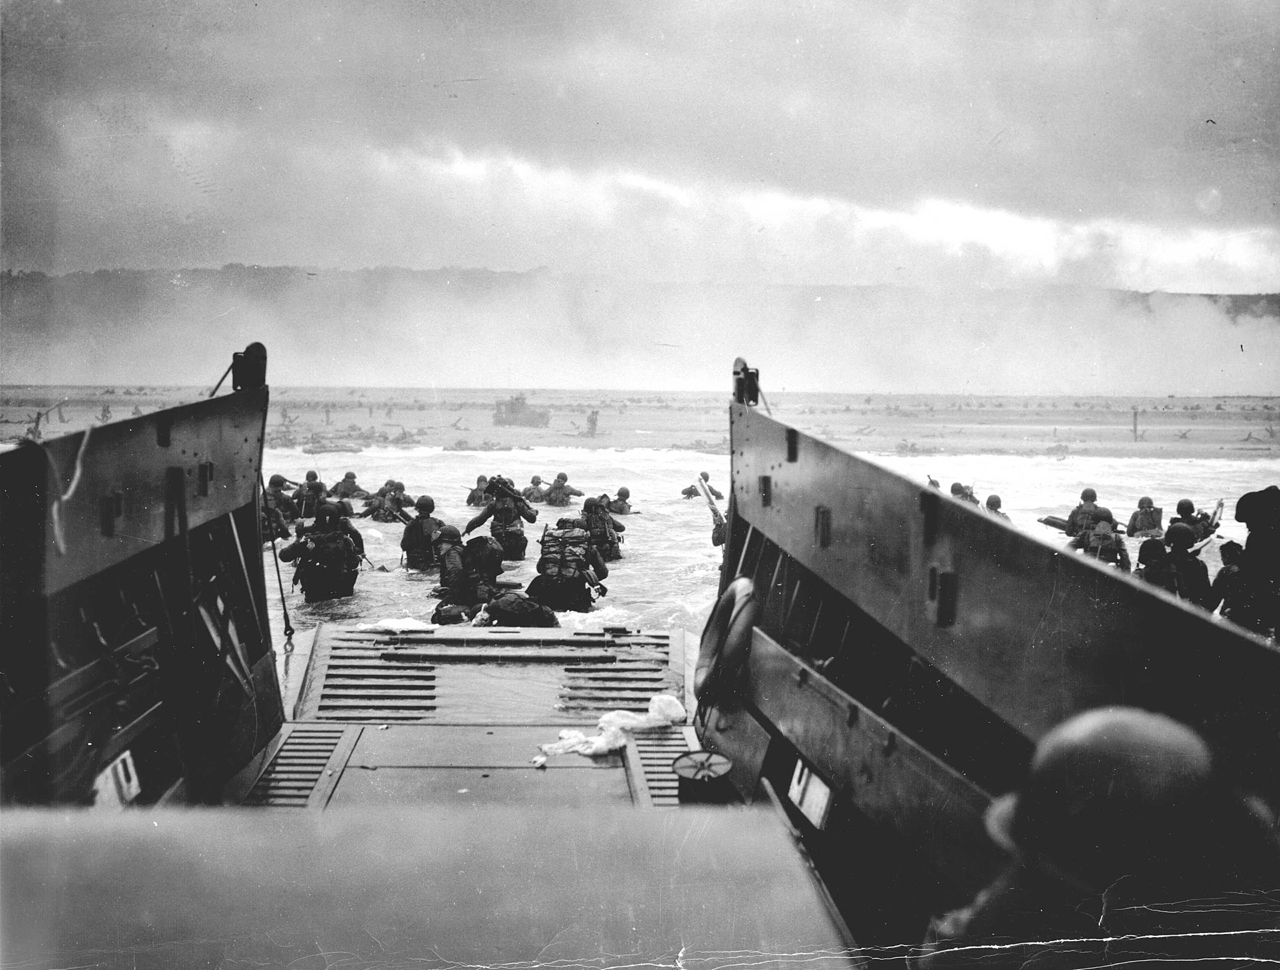 Normandy 6th June 1944